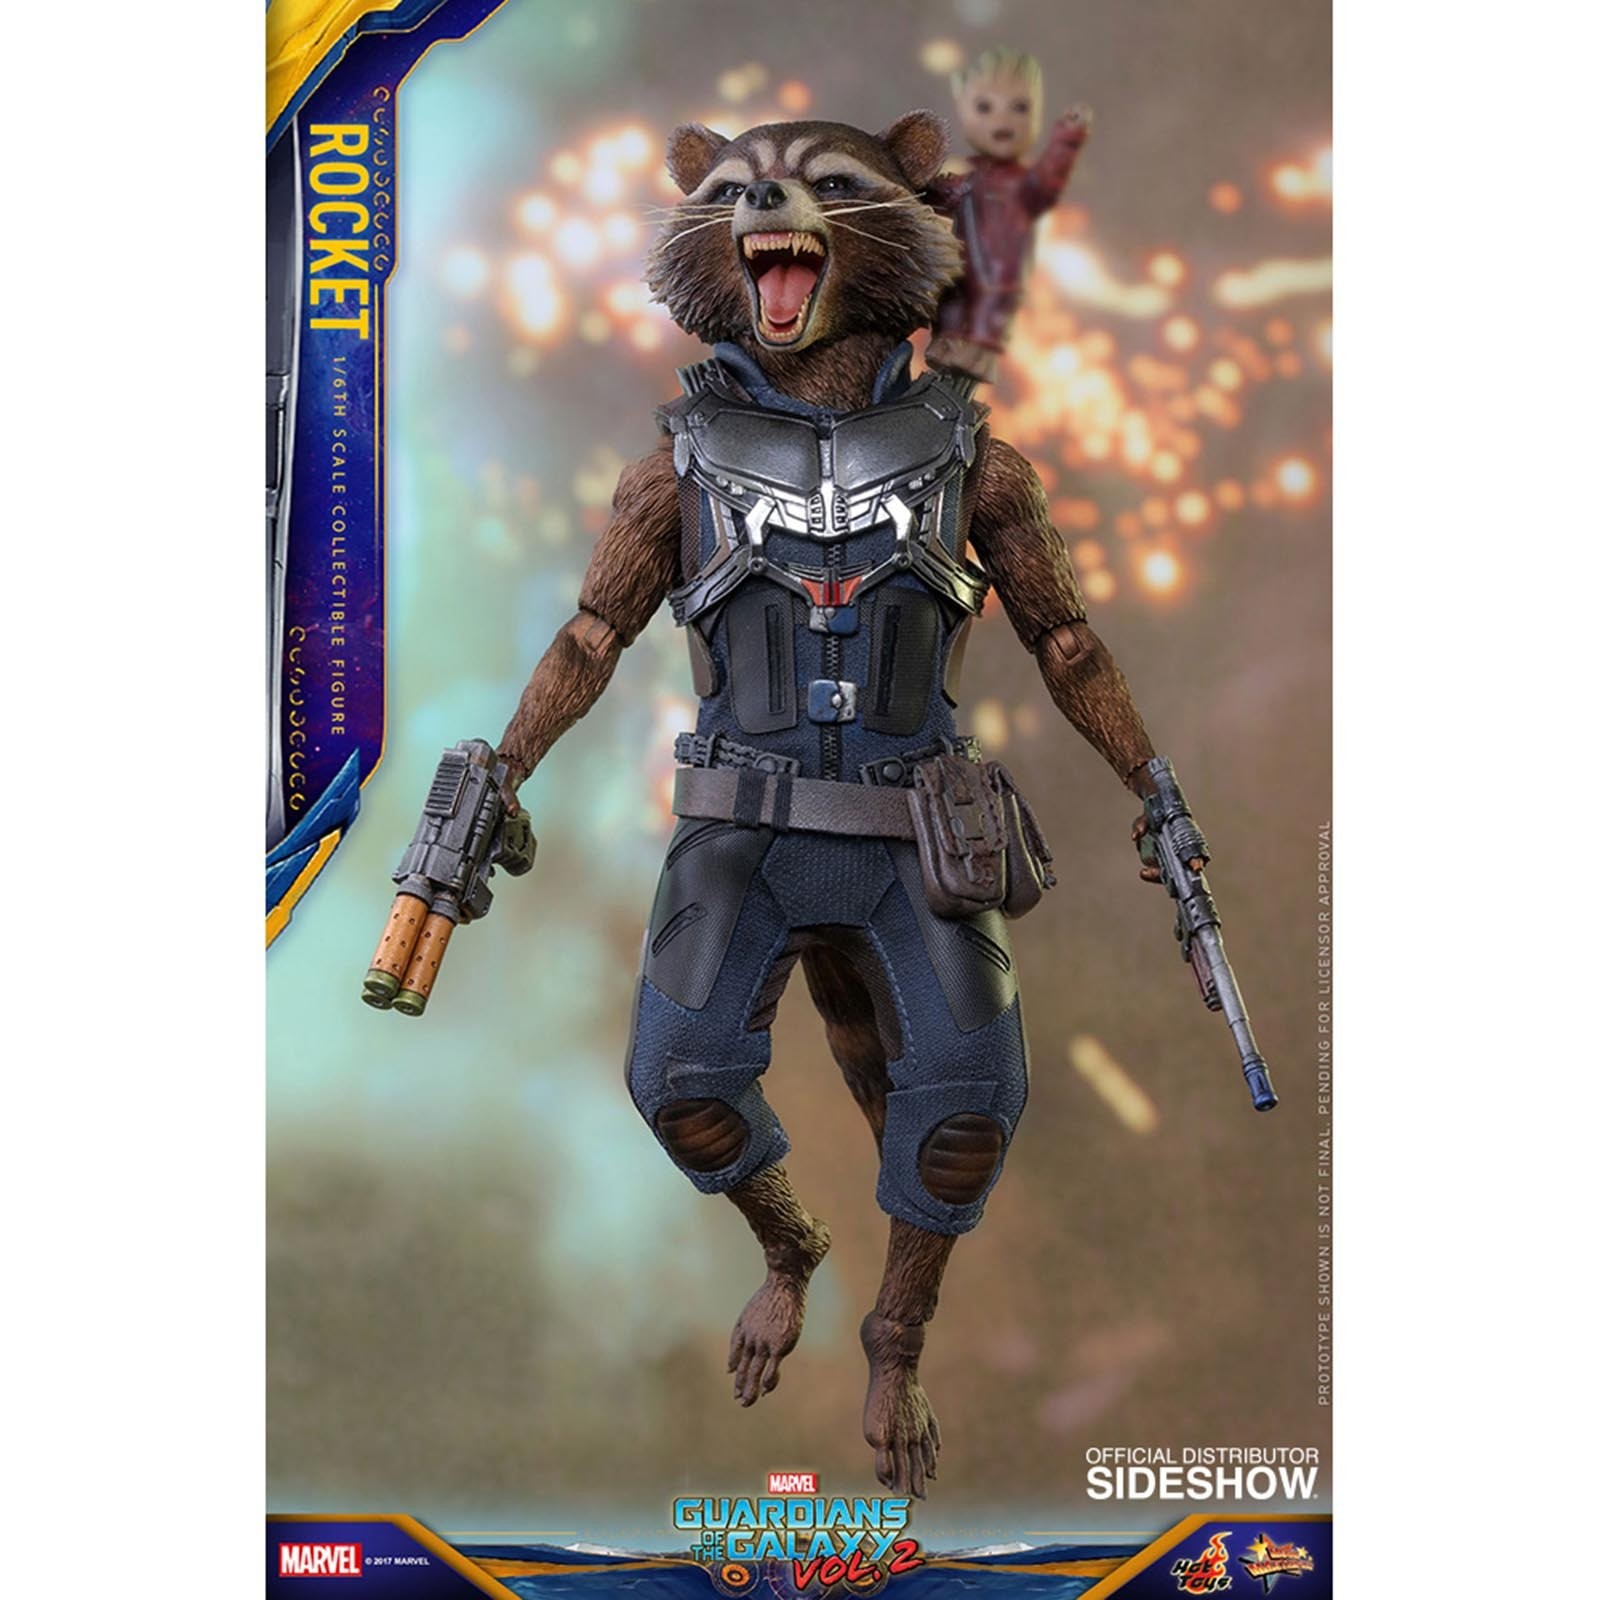 Guardians Of The Galaxy Vol 2 6 Inch Action Figure Movie Masterpiece 1/6 Scale Series - Rocket Raccoon Hot Toys 902964